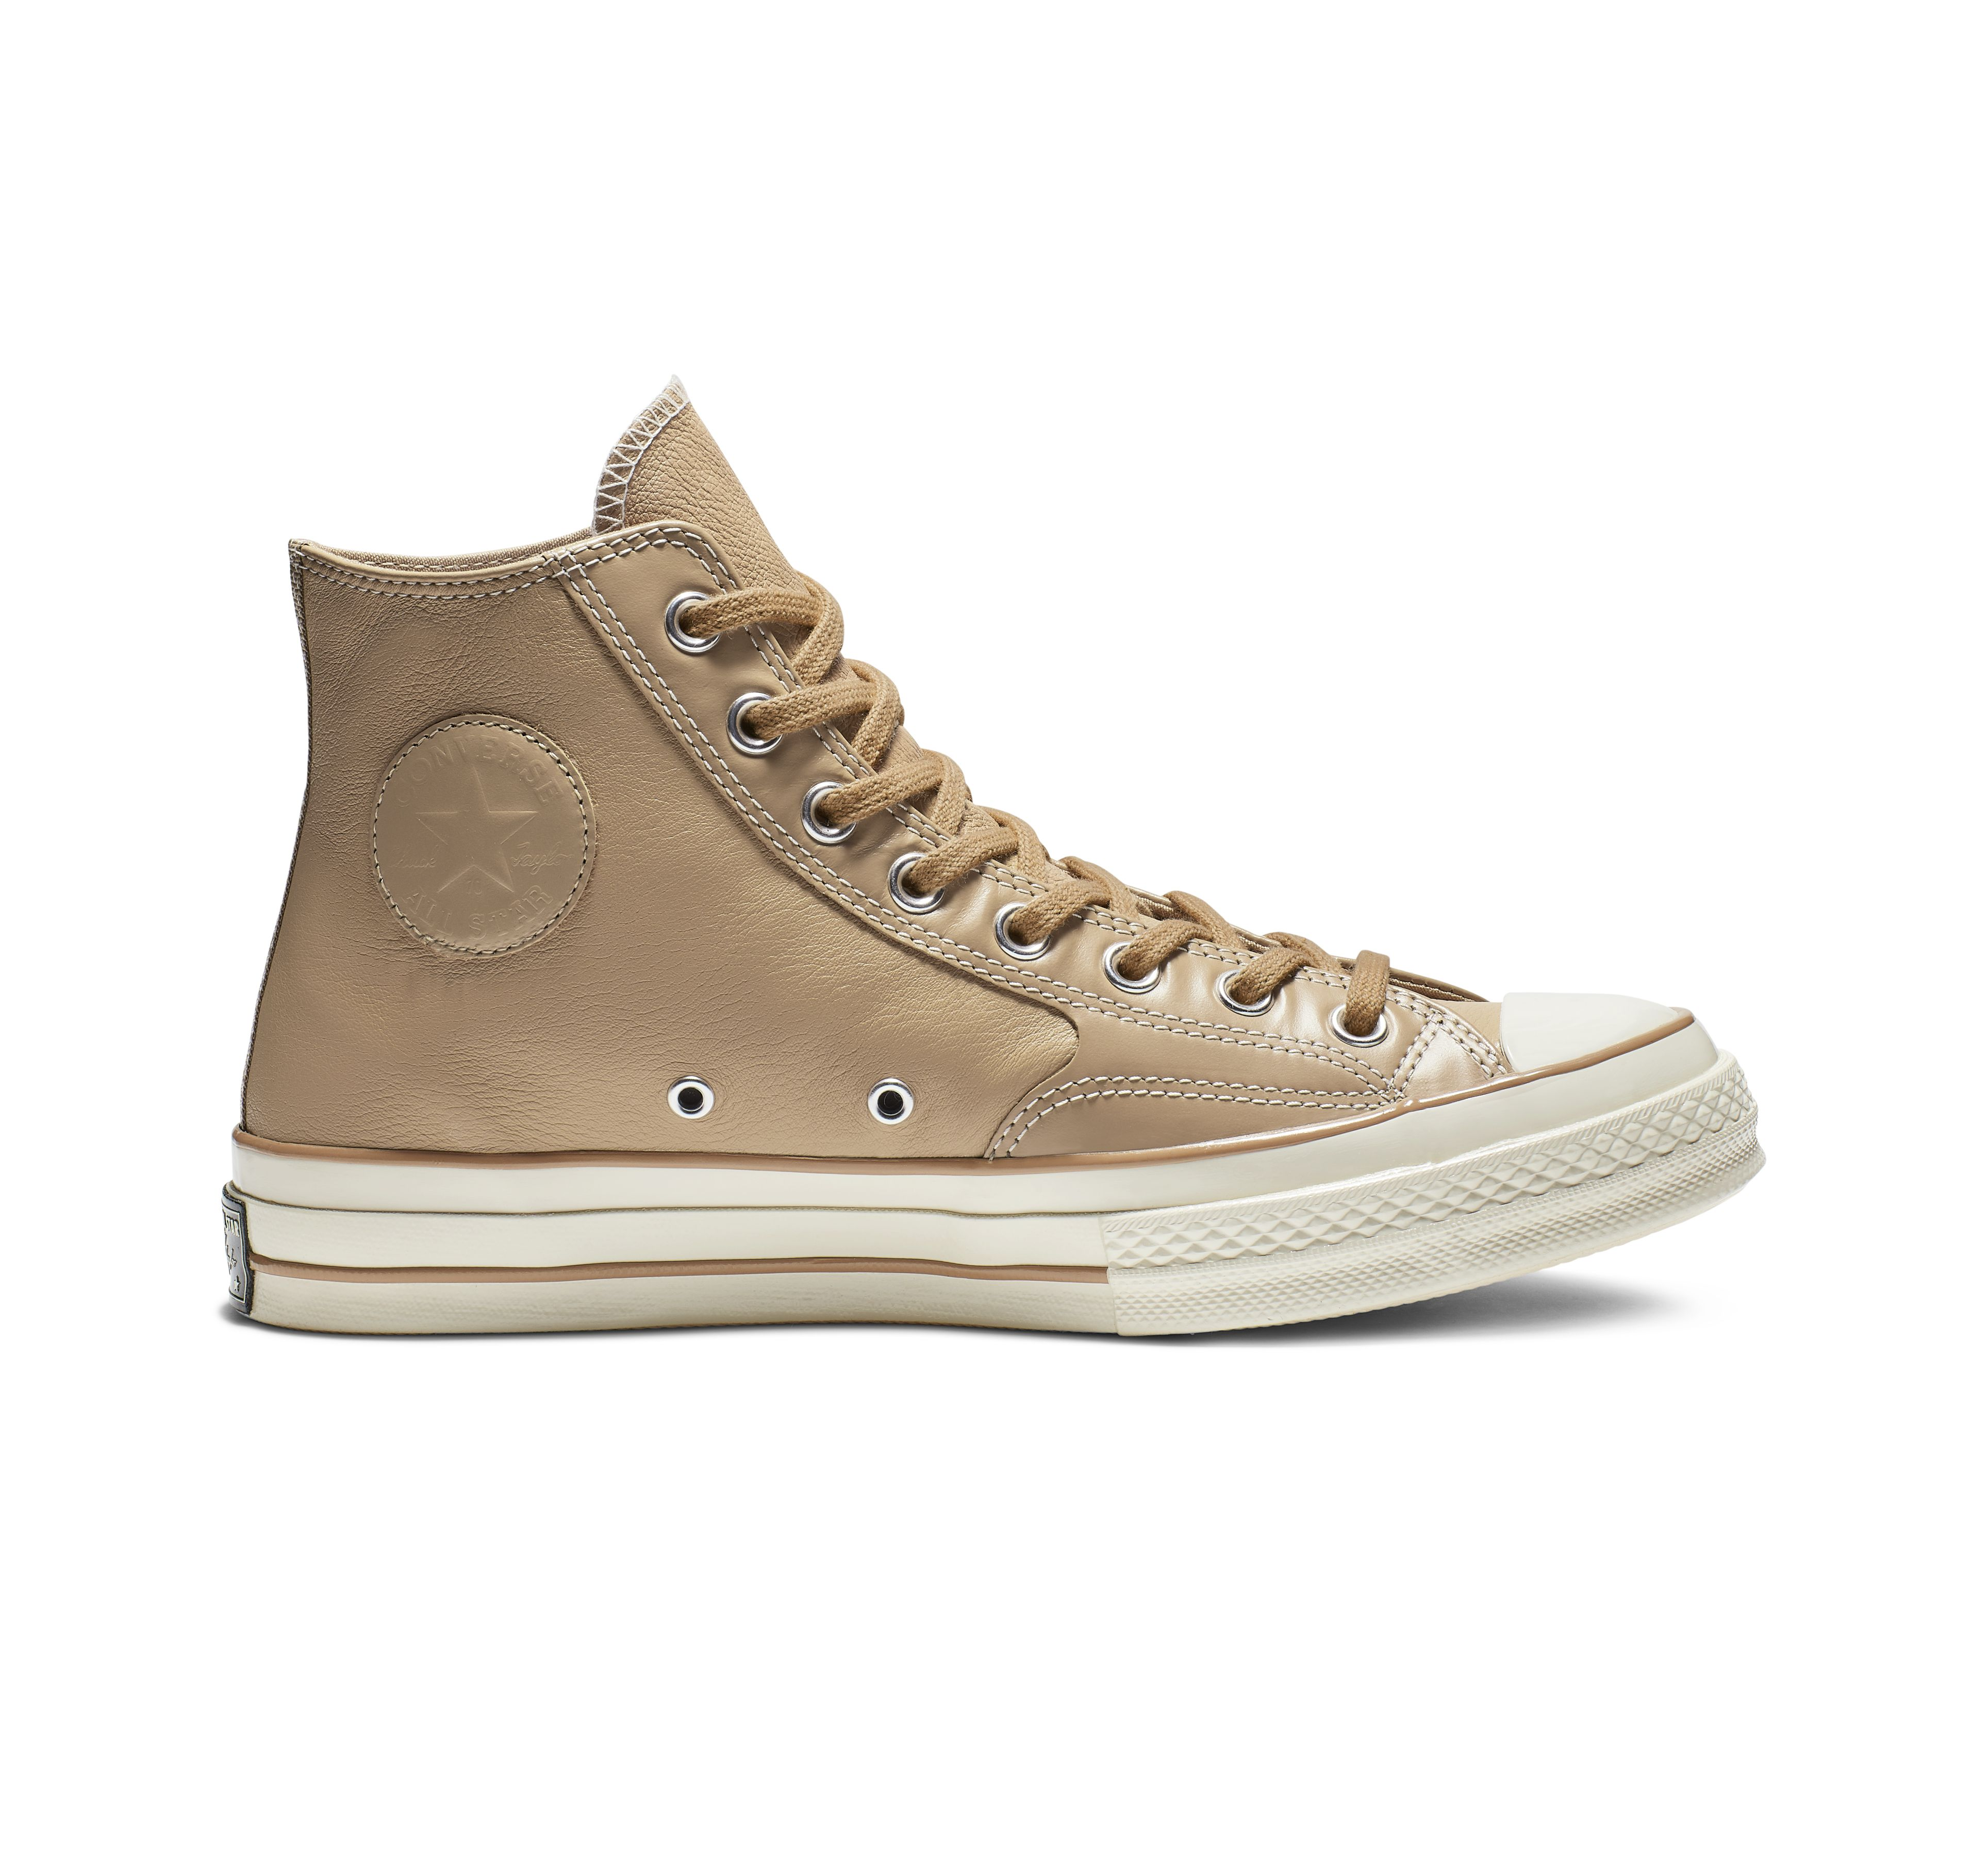 Chuck 70 Luxe Leather High Top | Converse shoes womens